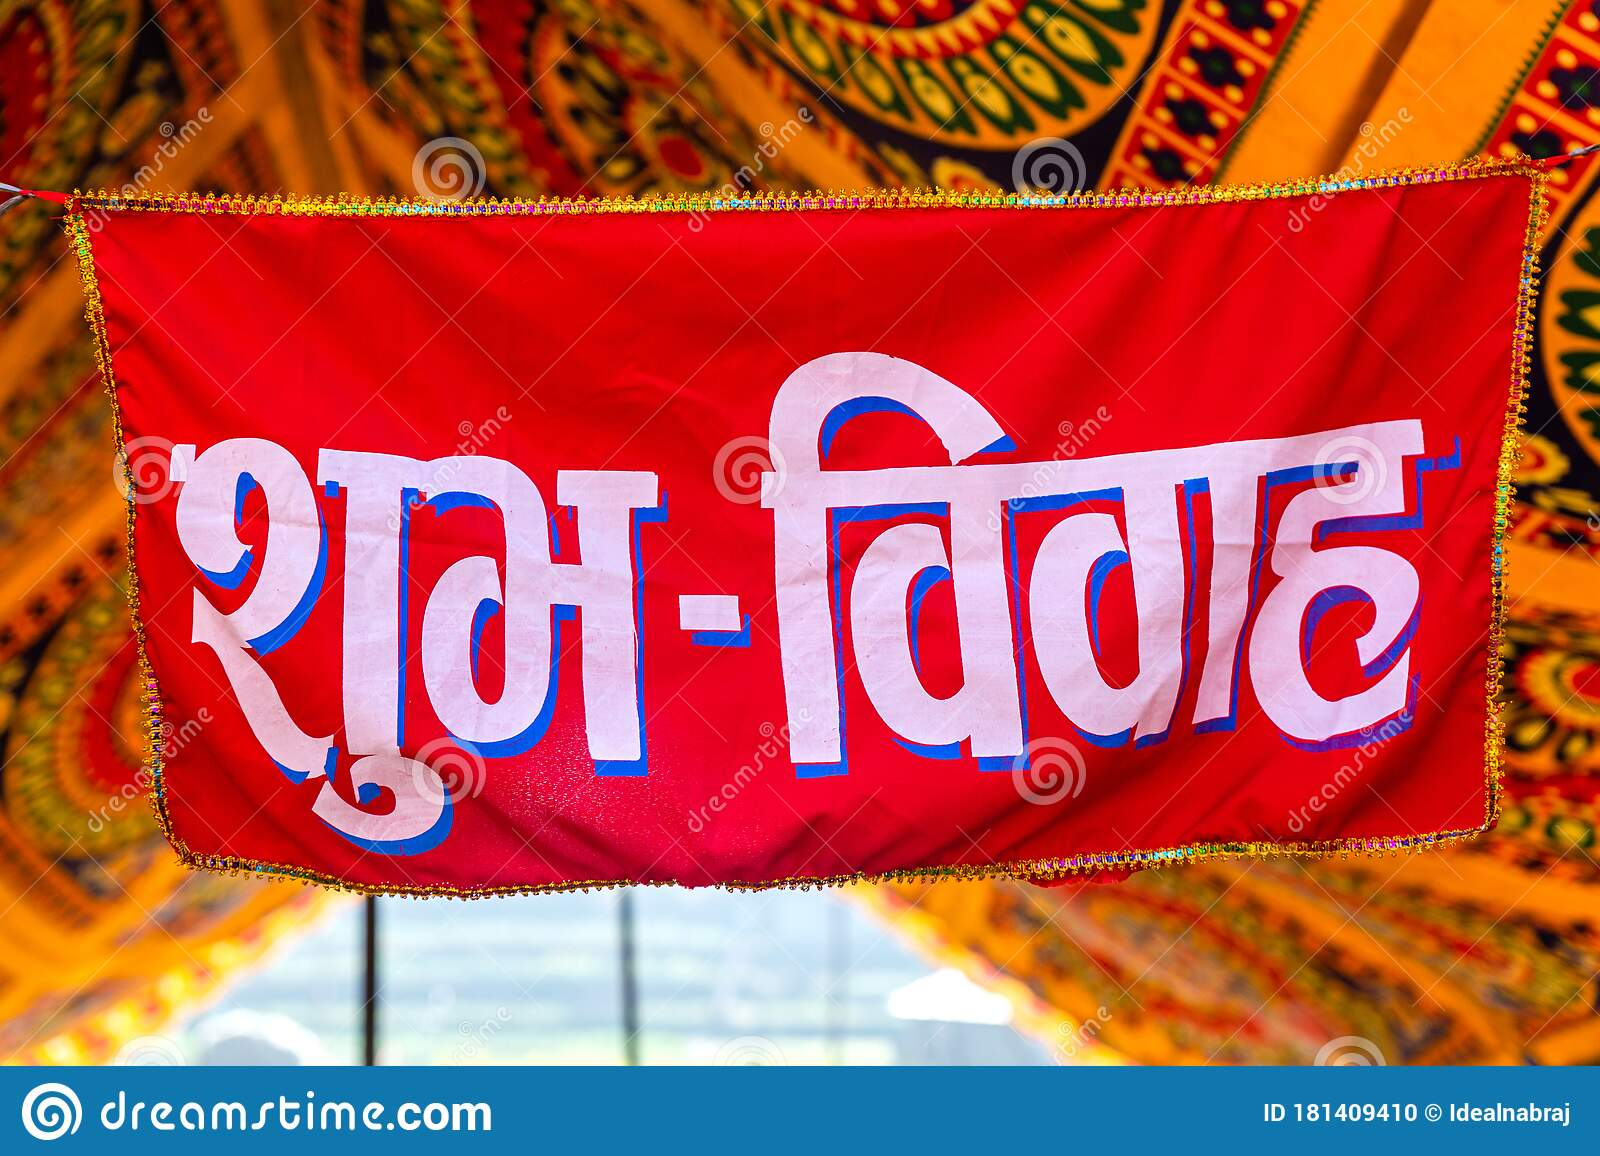 nepali wedding banner subha bibaha stock photo image of wedding bridegroom 181409410 dreamstime com